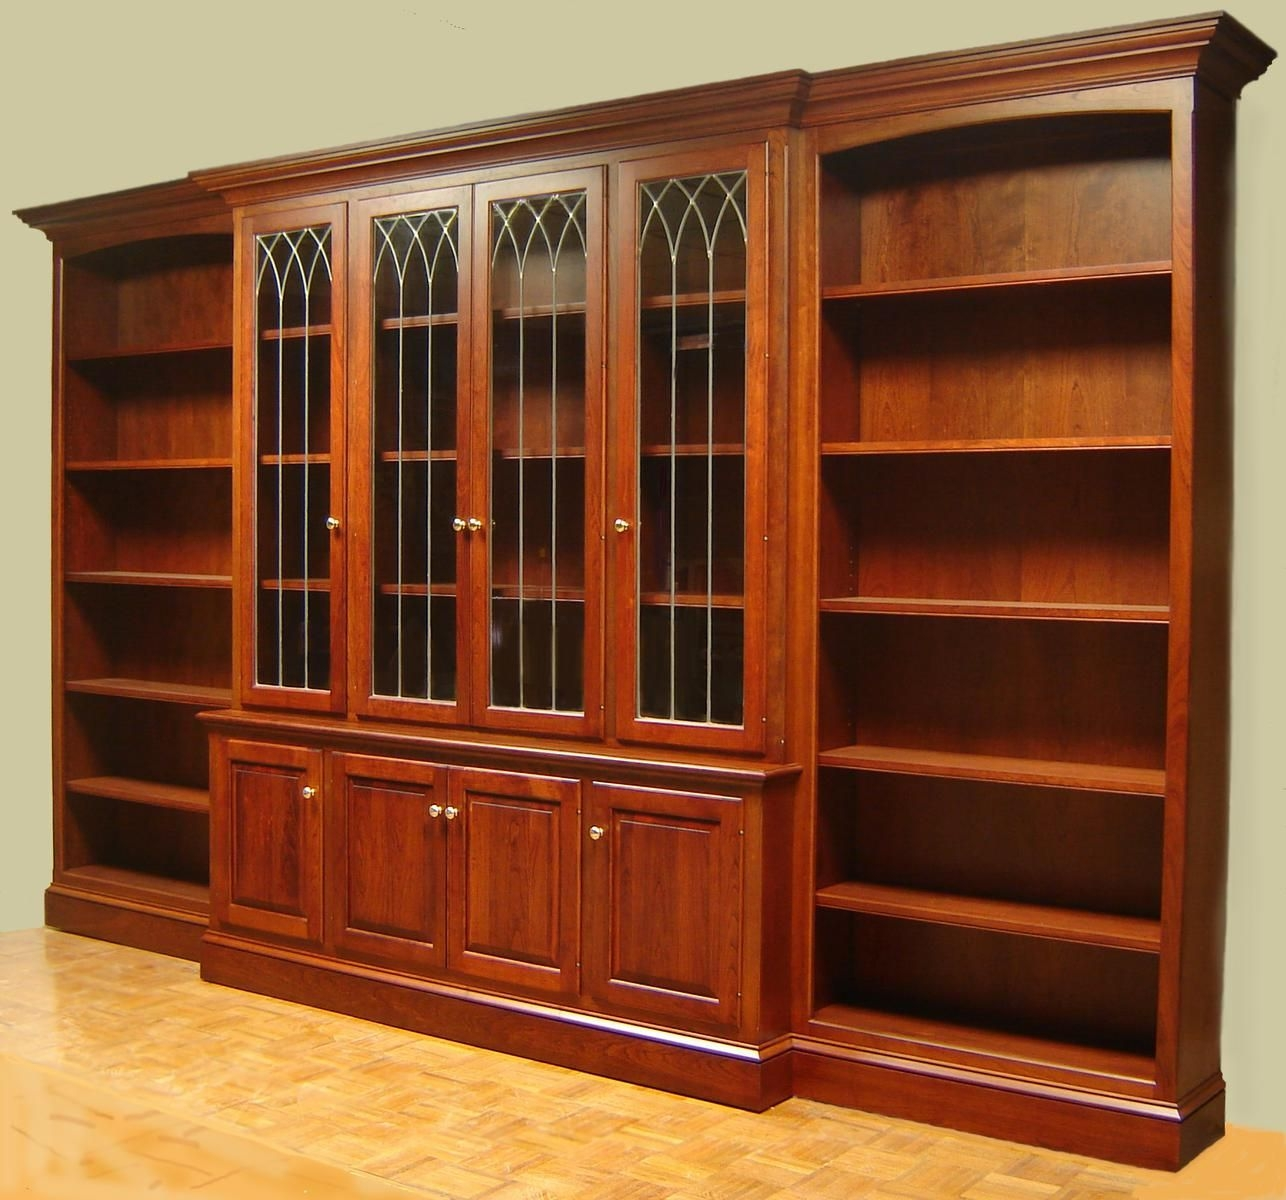 Large Bookcase With Glass Doors Doherty House Choosing Pertaining To Large Bookcases (#11 of 15)